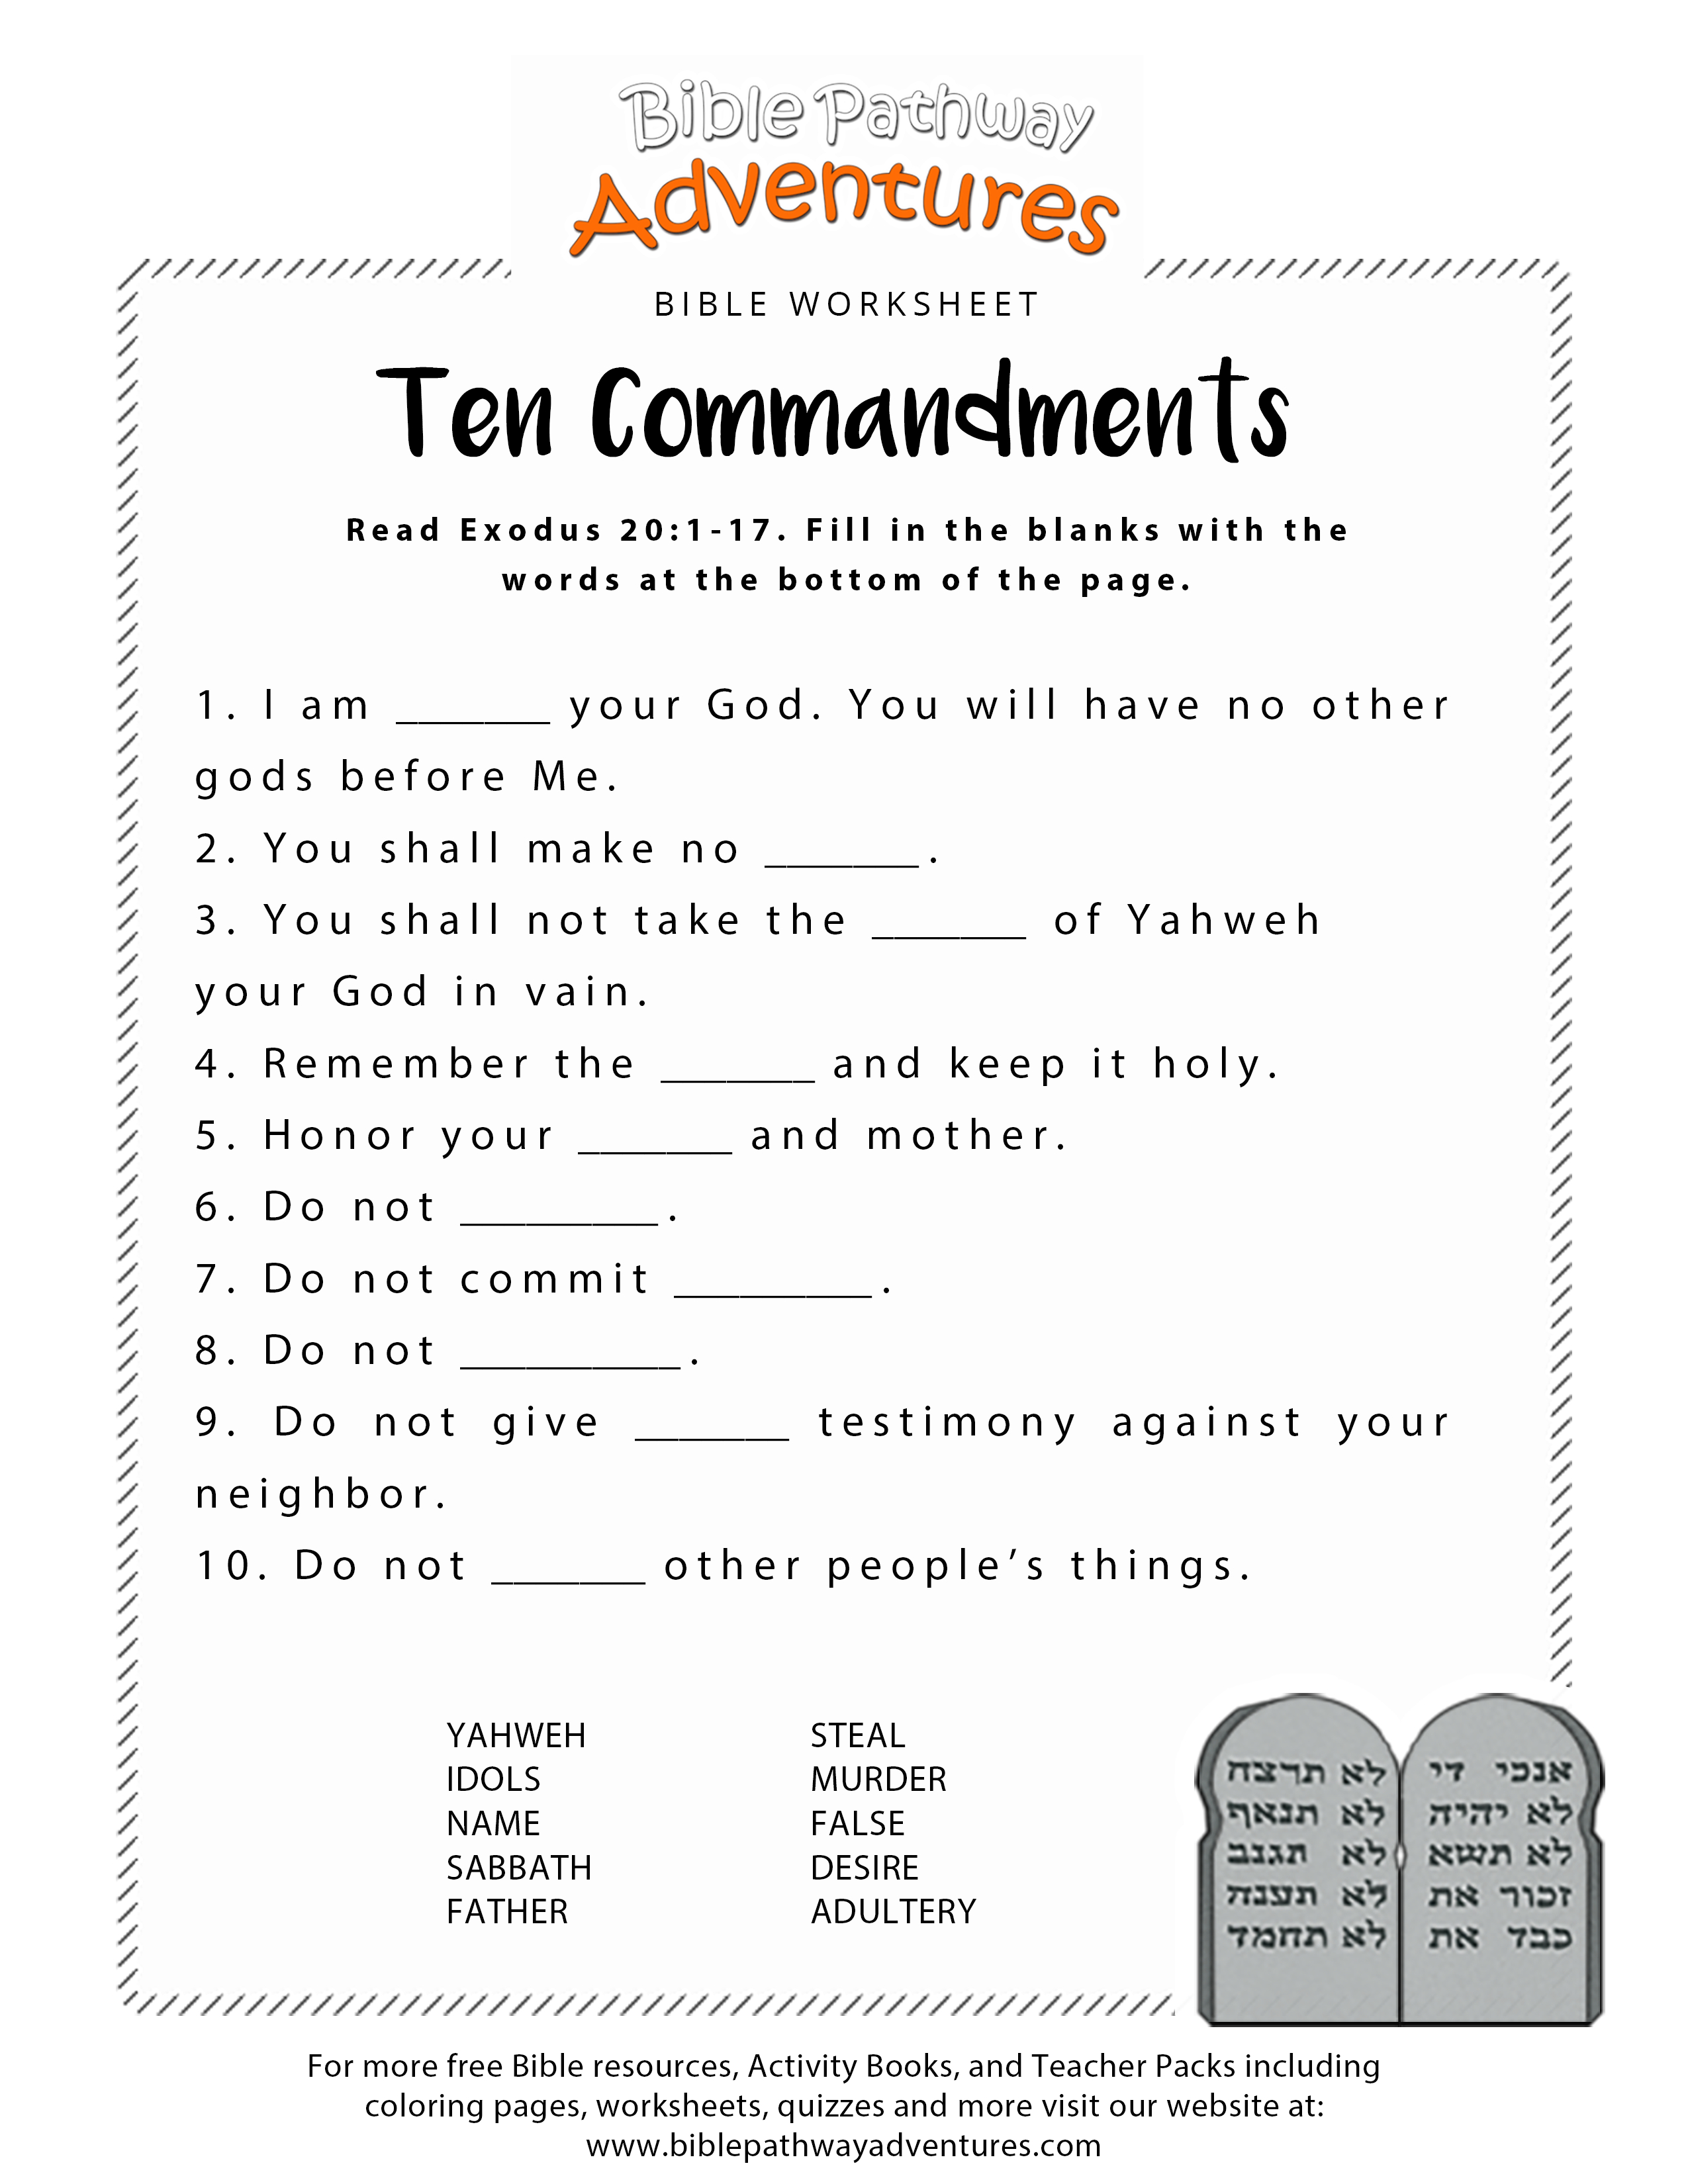 Ten Commandments Worksheet For Kids - Free Printable Bible Games For Youth